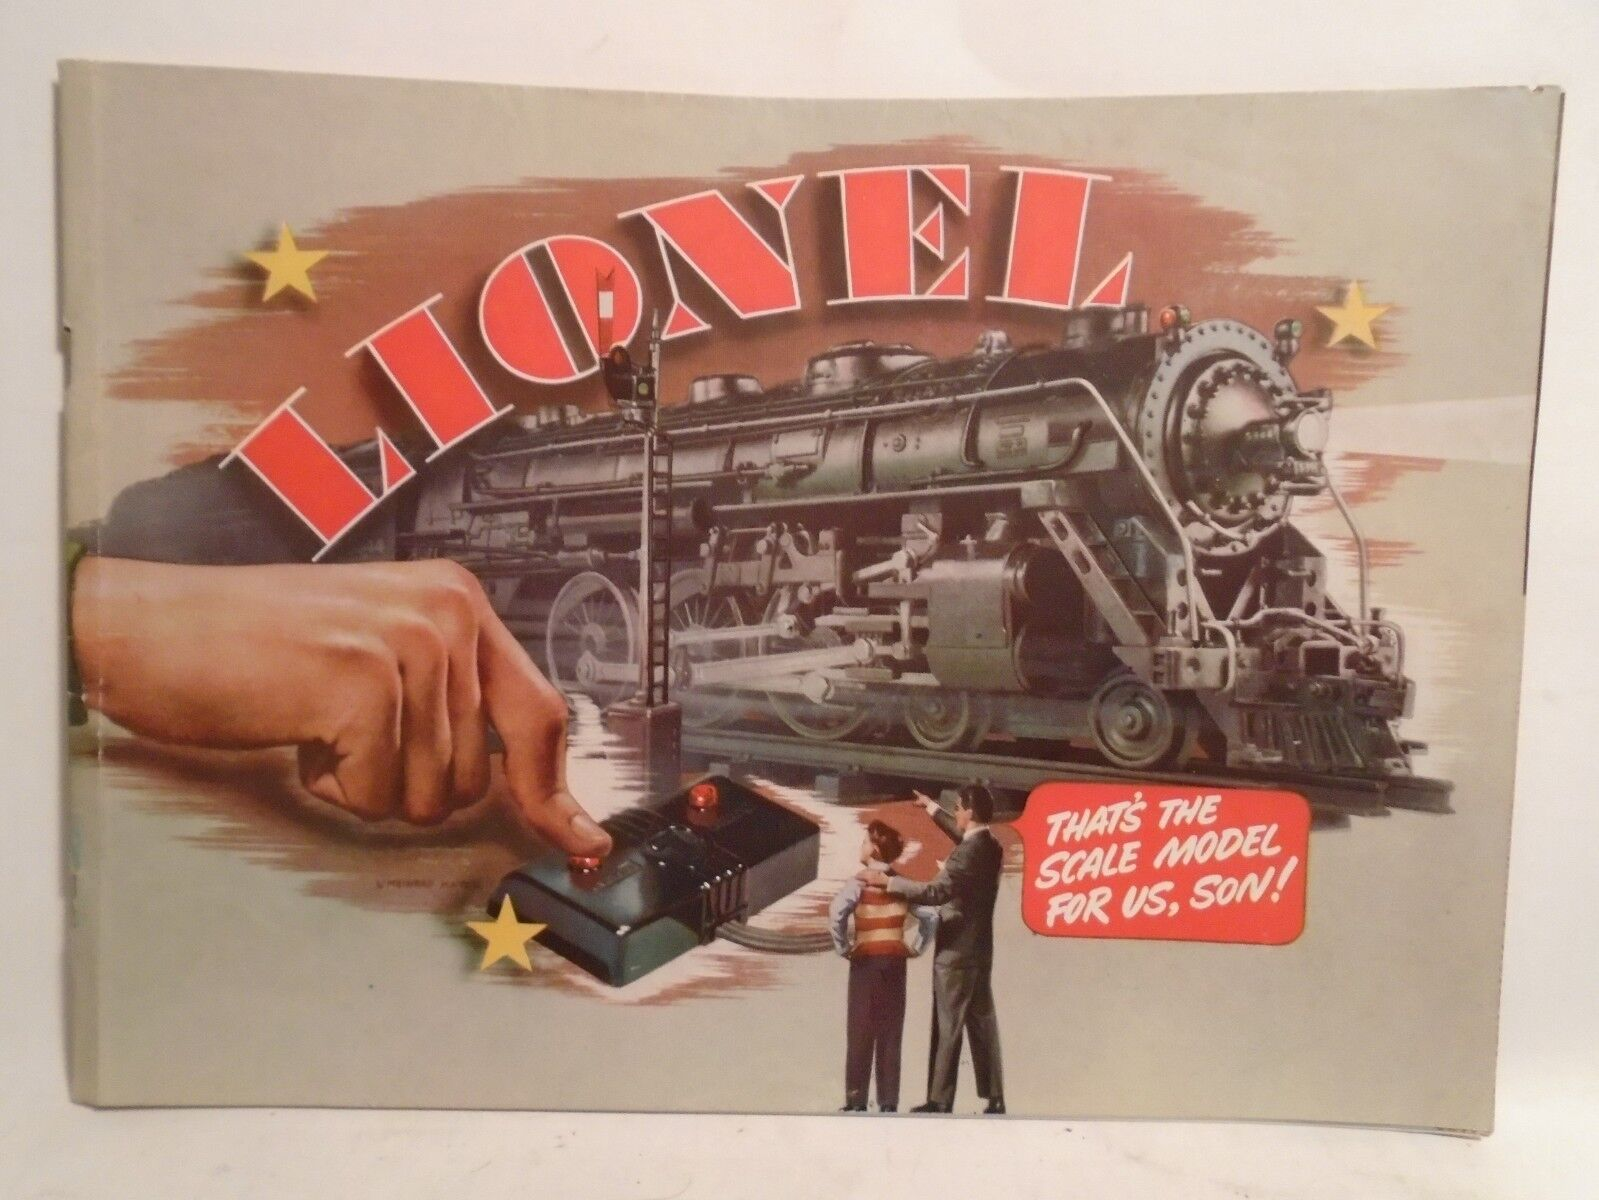 ORIGINAL LIONEL 1940 CATALOG IN NEAR MINT CONDITION